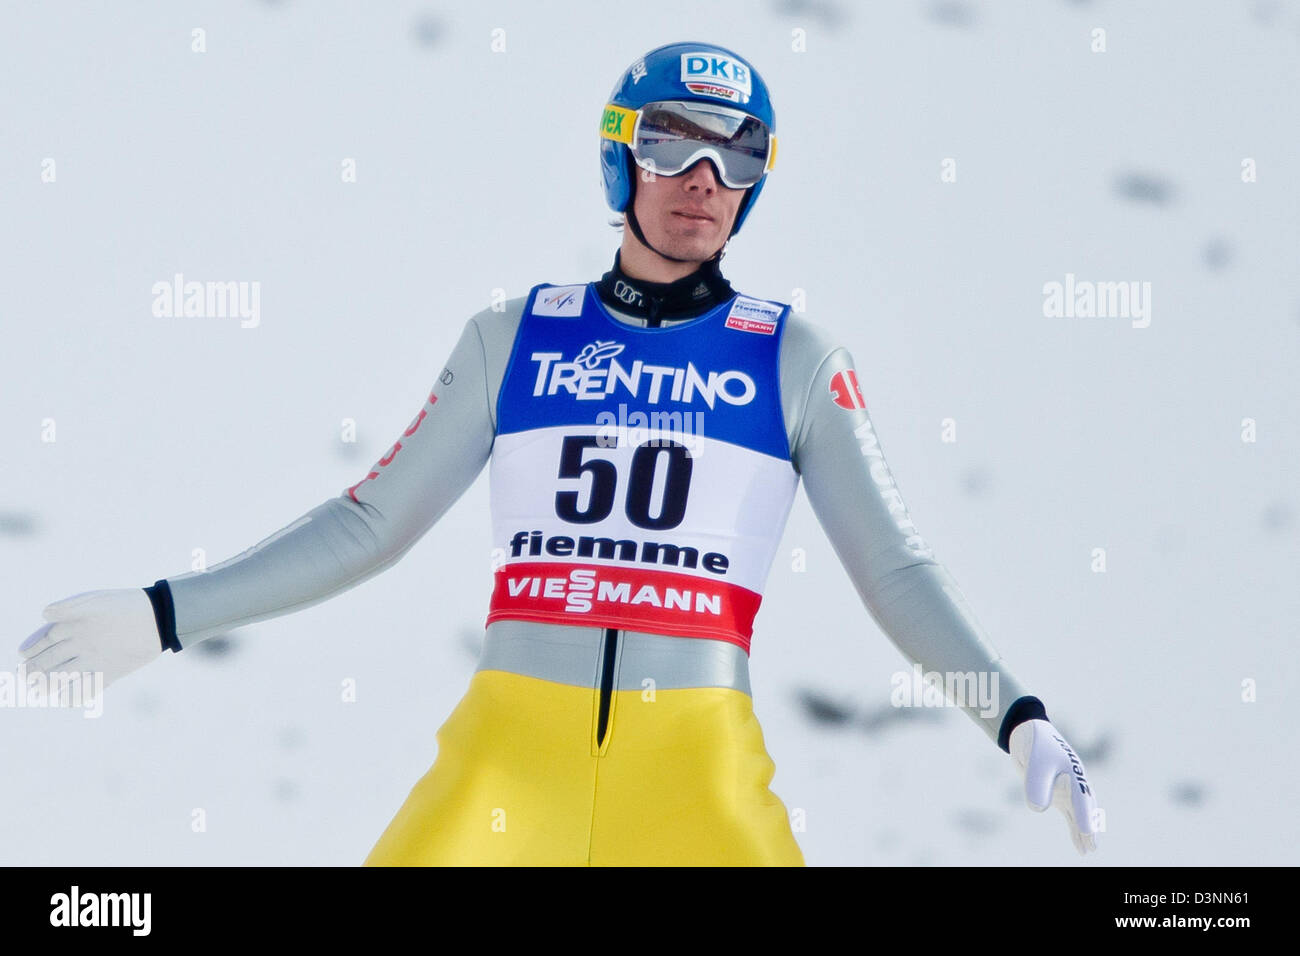 a8c30bb28ac76b Tino Edelmann of Germany reacts after his jump in the Individual Normal  Hill Ski Jumping portion of the Nordic Combined competition at the Nordic  Skiing ...